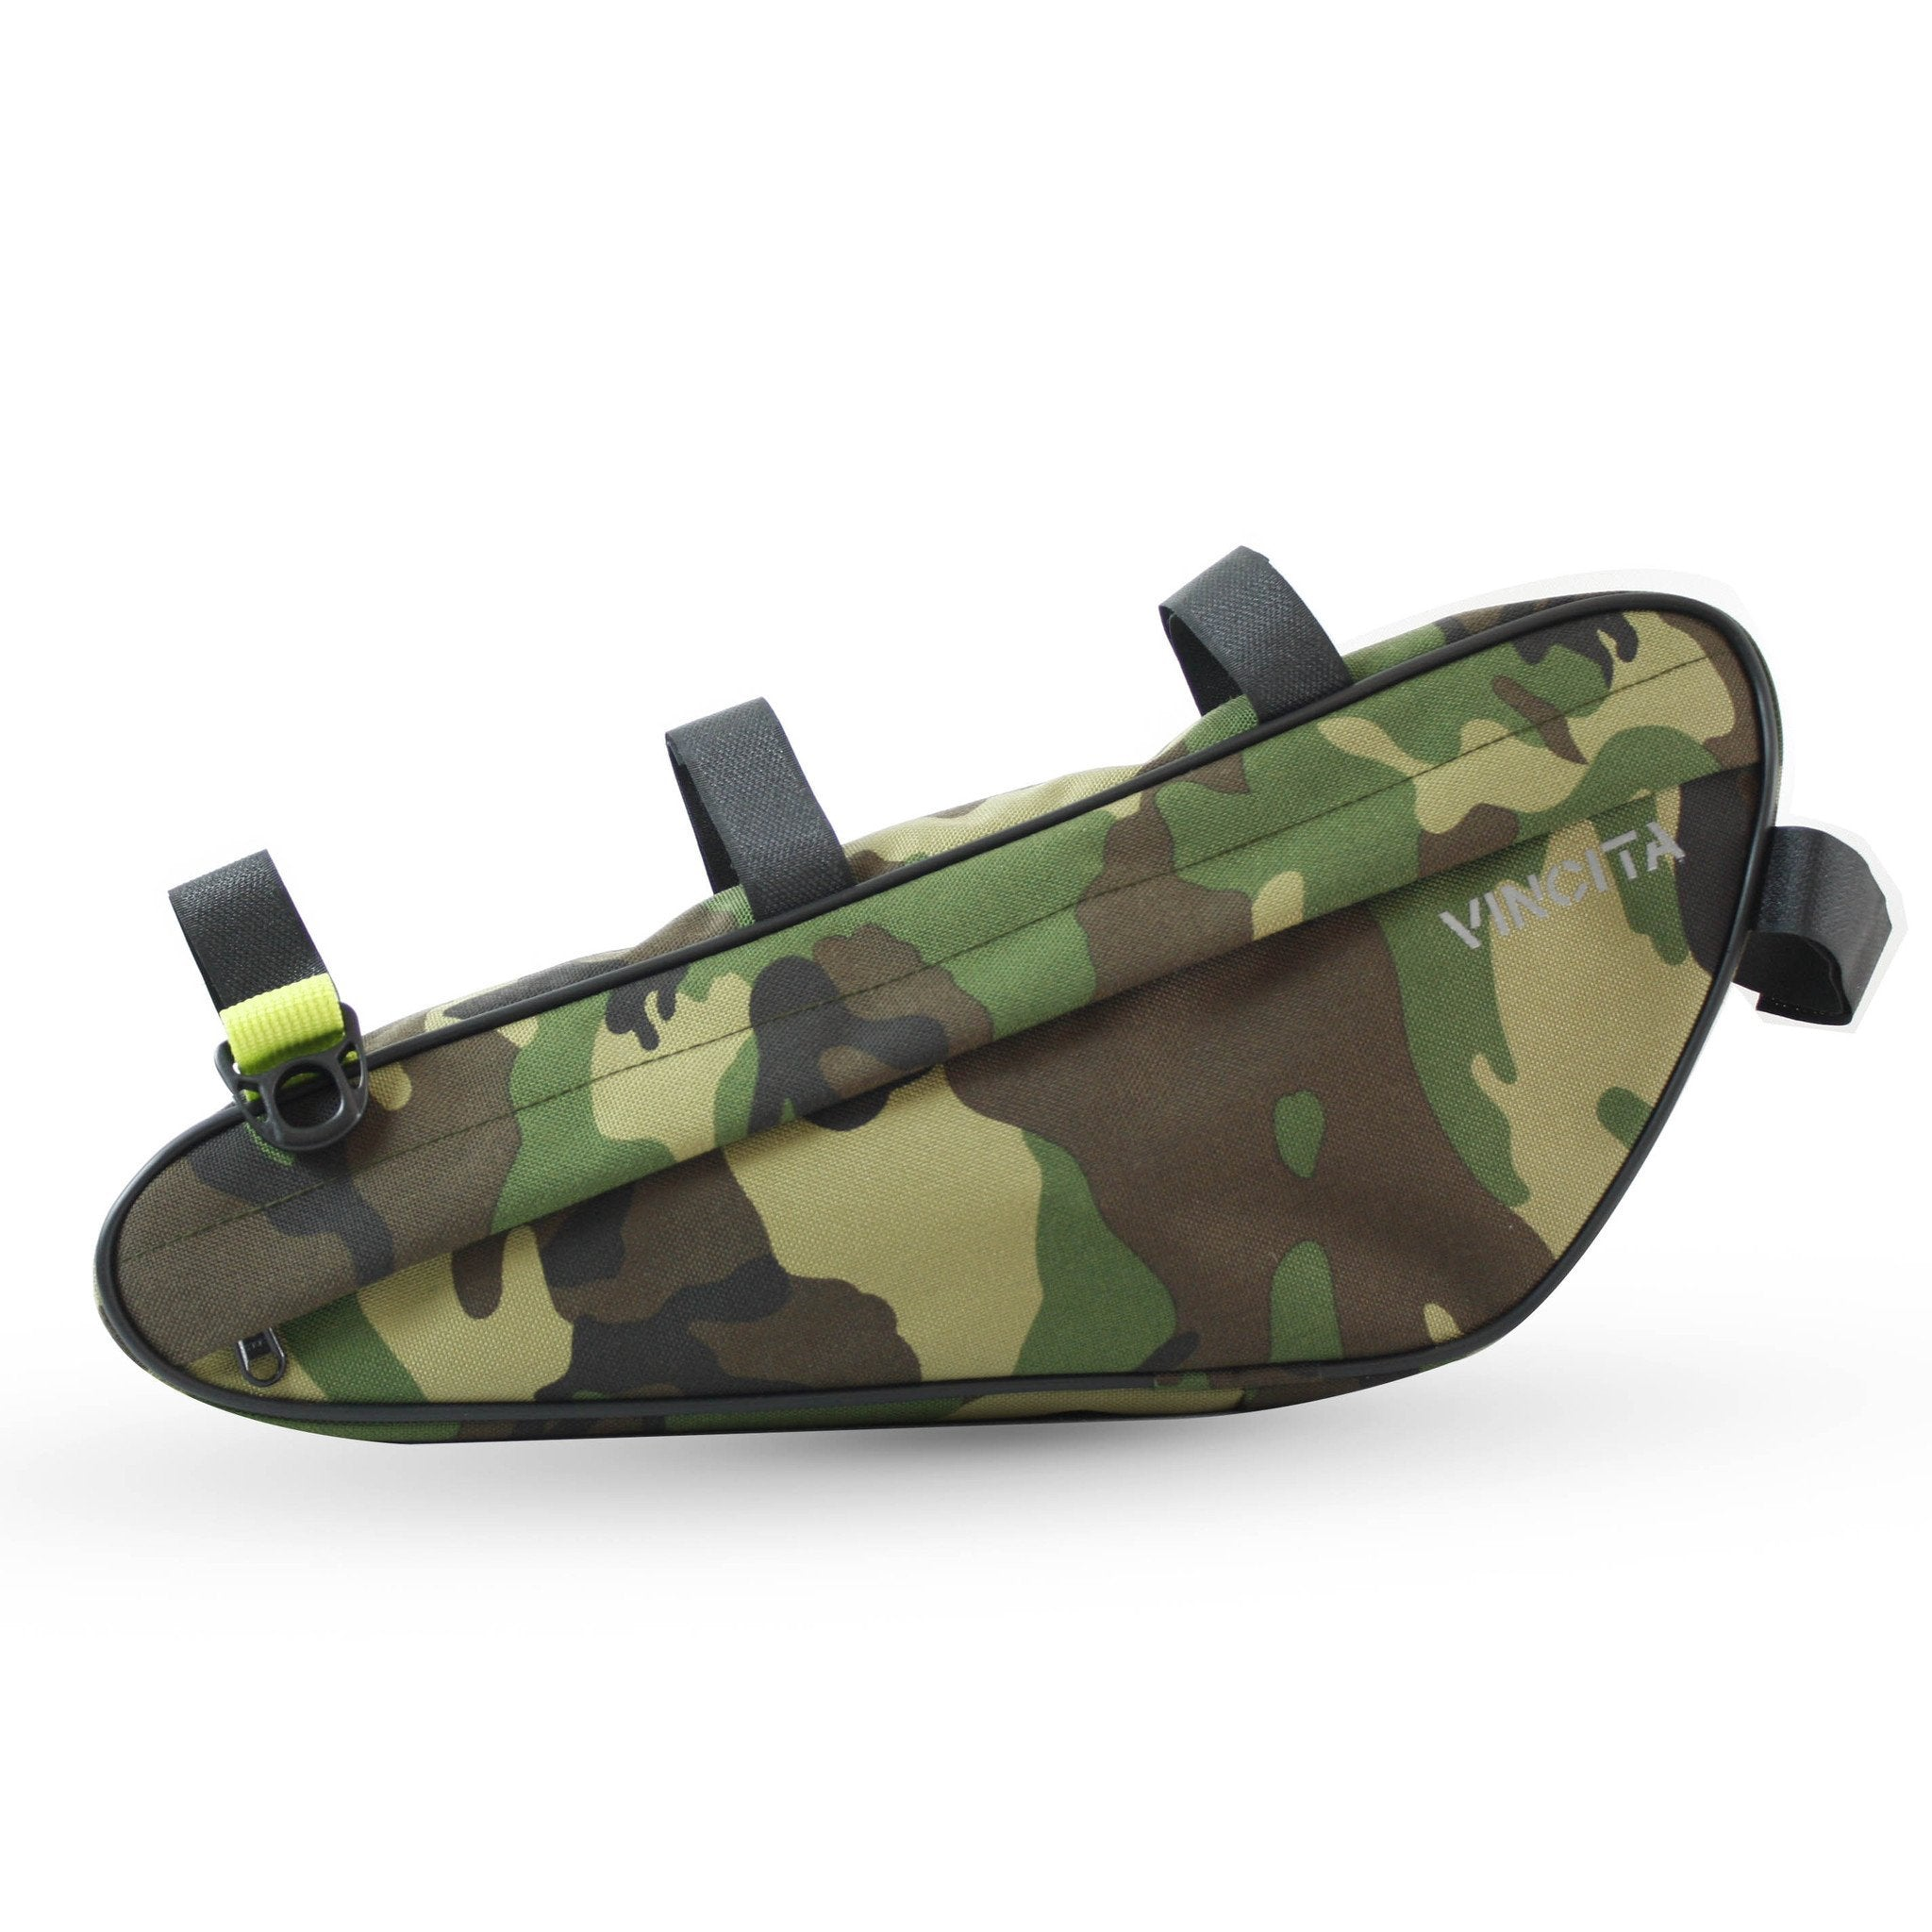 Vincita Co., Ltd. bicycle bag camouflage / th B024L